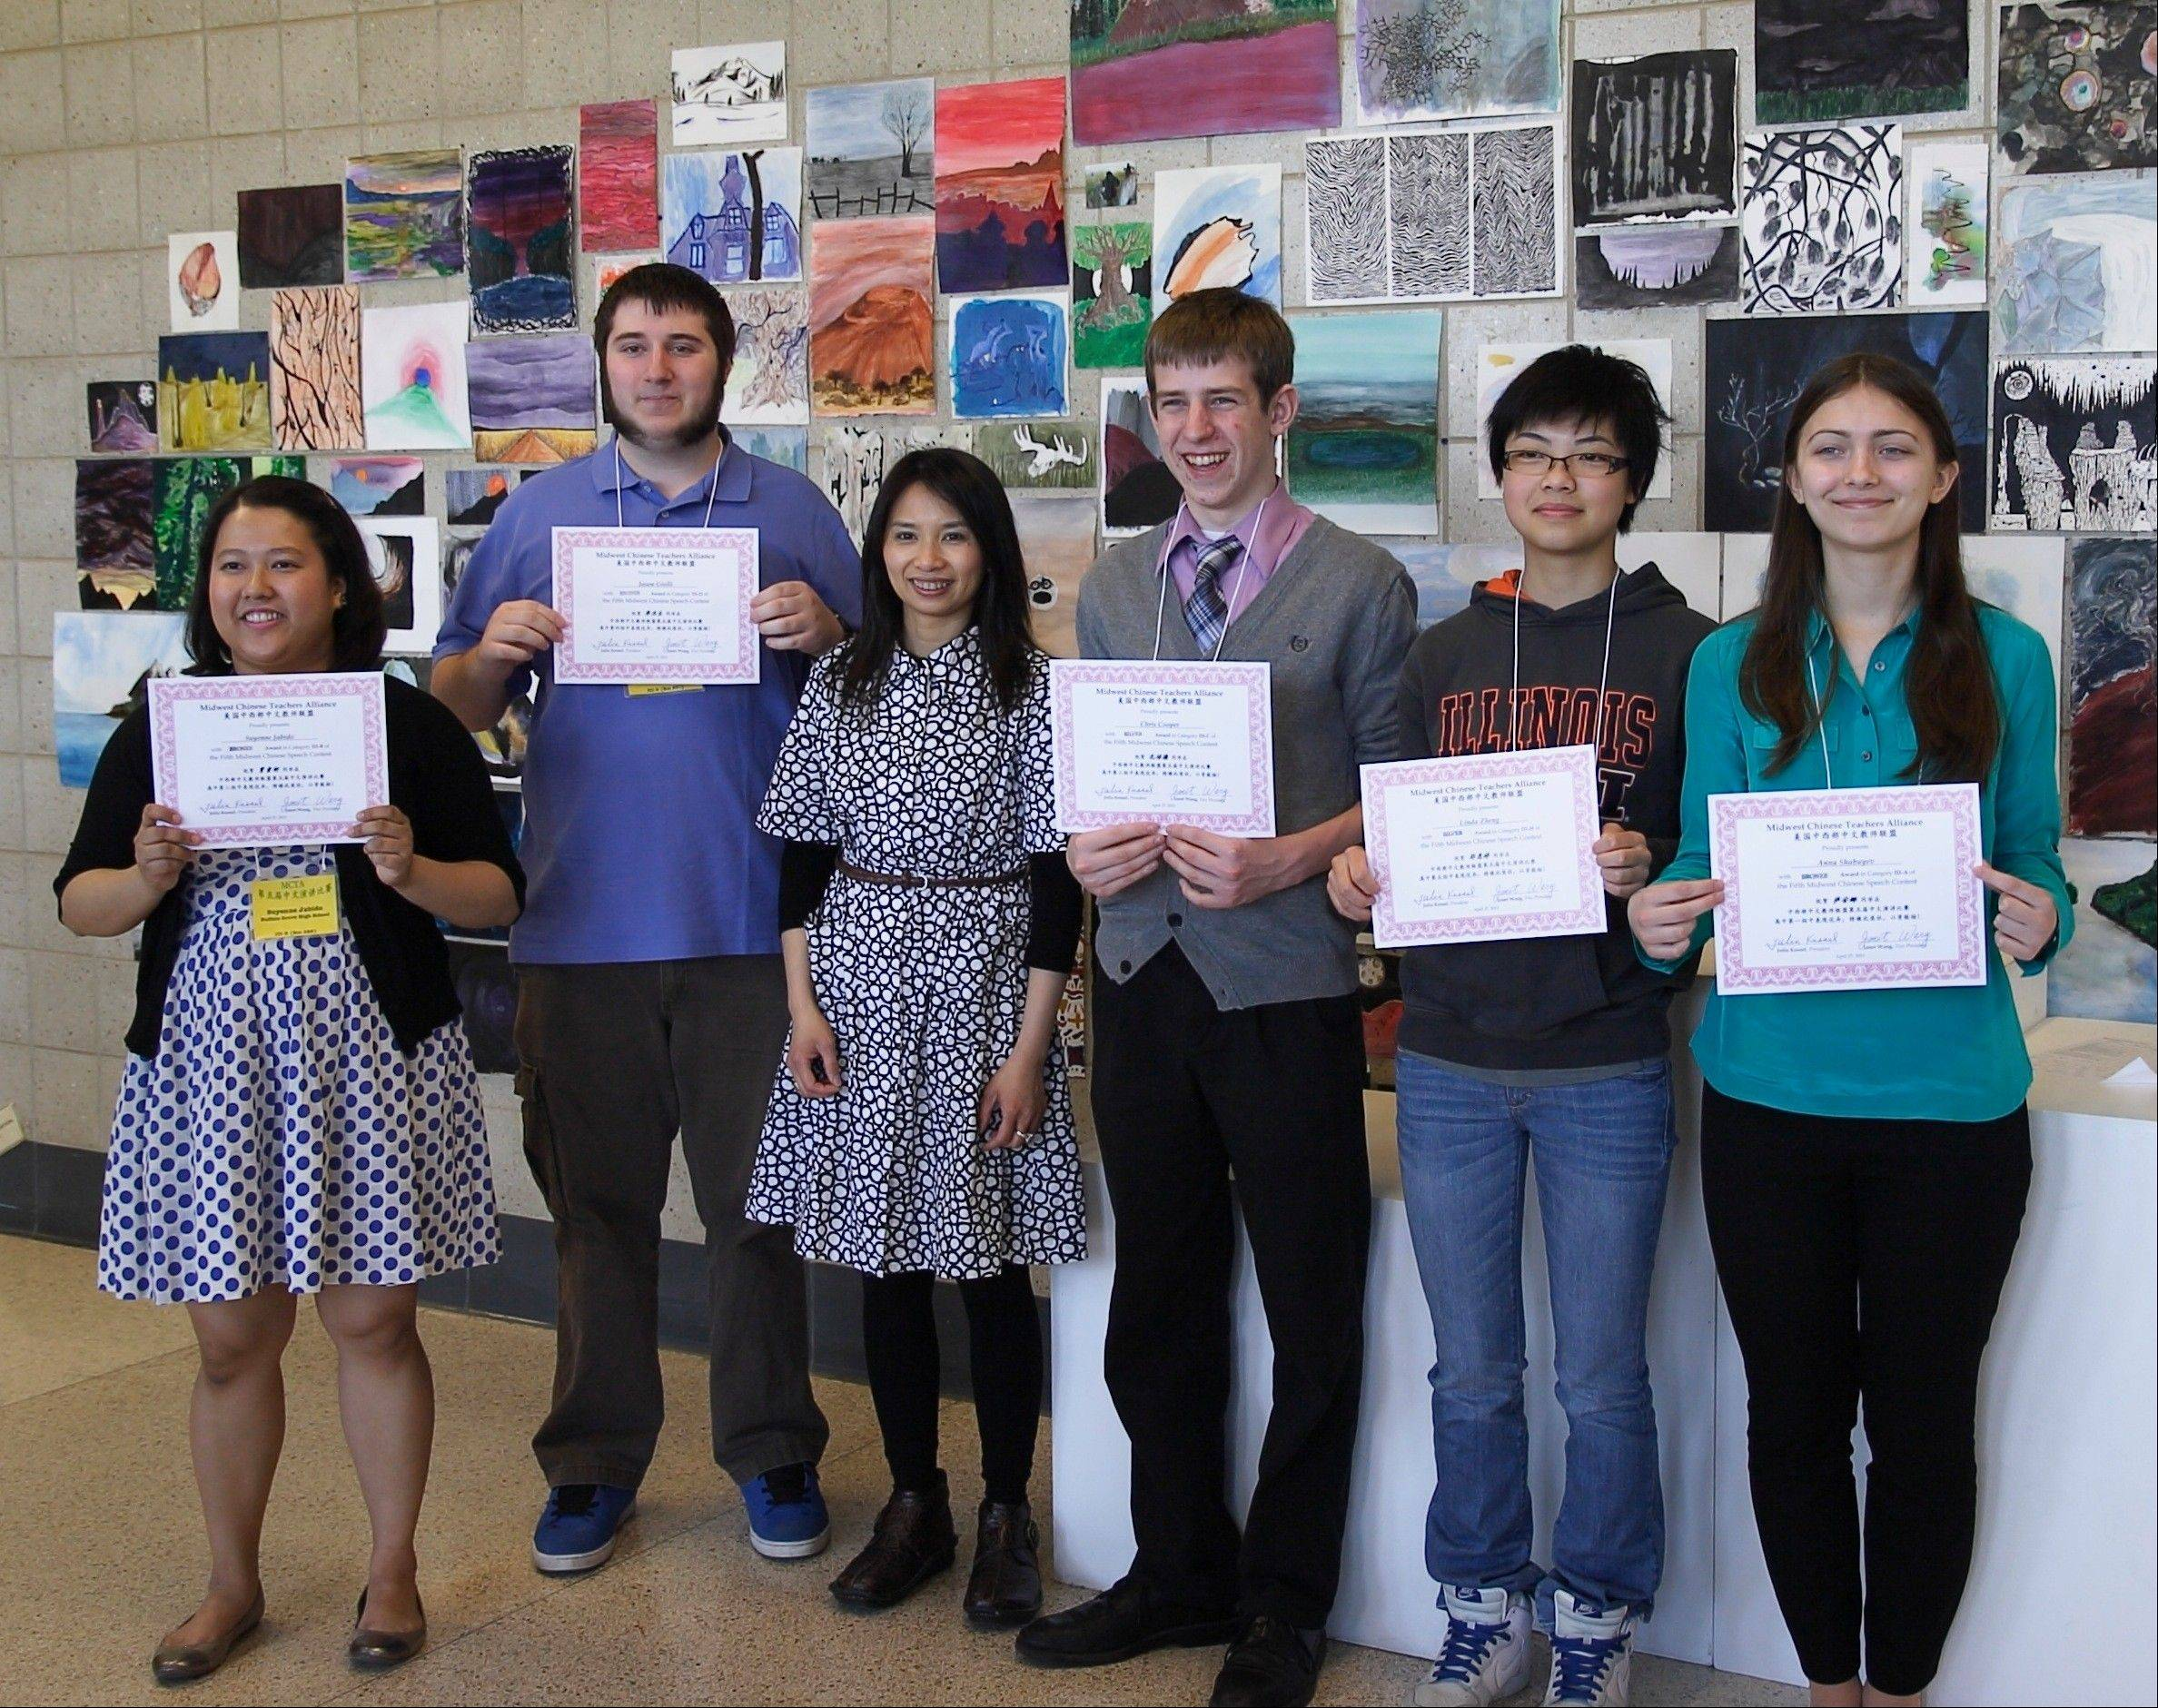 Buffalo Grove High School students display their awards at the fifth Midwest Chinese Speech Contest on April 27. Pictured, from left, are: Suyenne Jabido, Jason Giolli, teacher Caili Chiu, Christopher Cooper, Linda Zheng and Anna Shabayev.